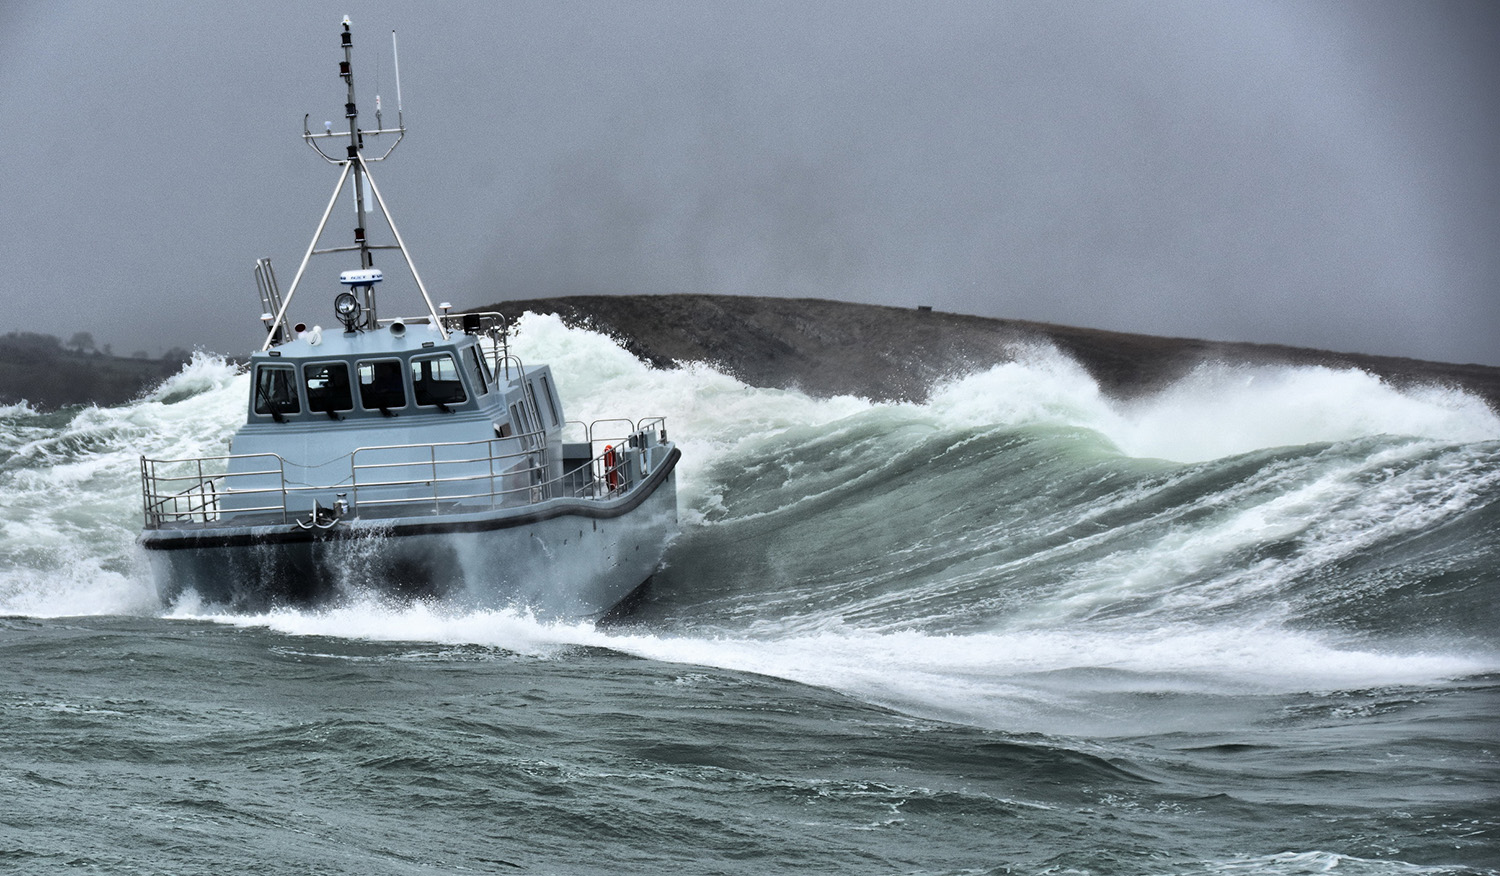 New survey ship HMS Magpie on sea trials